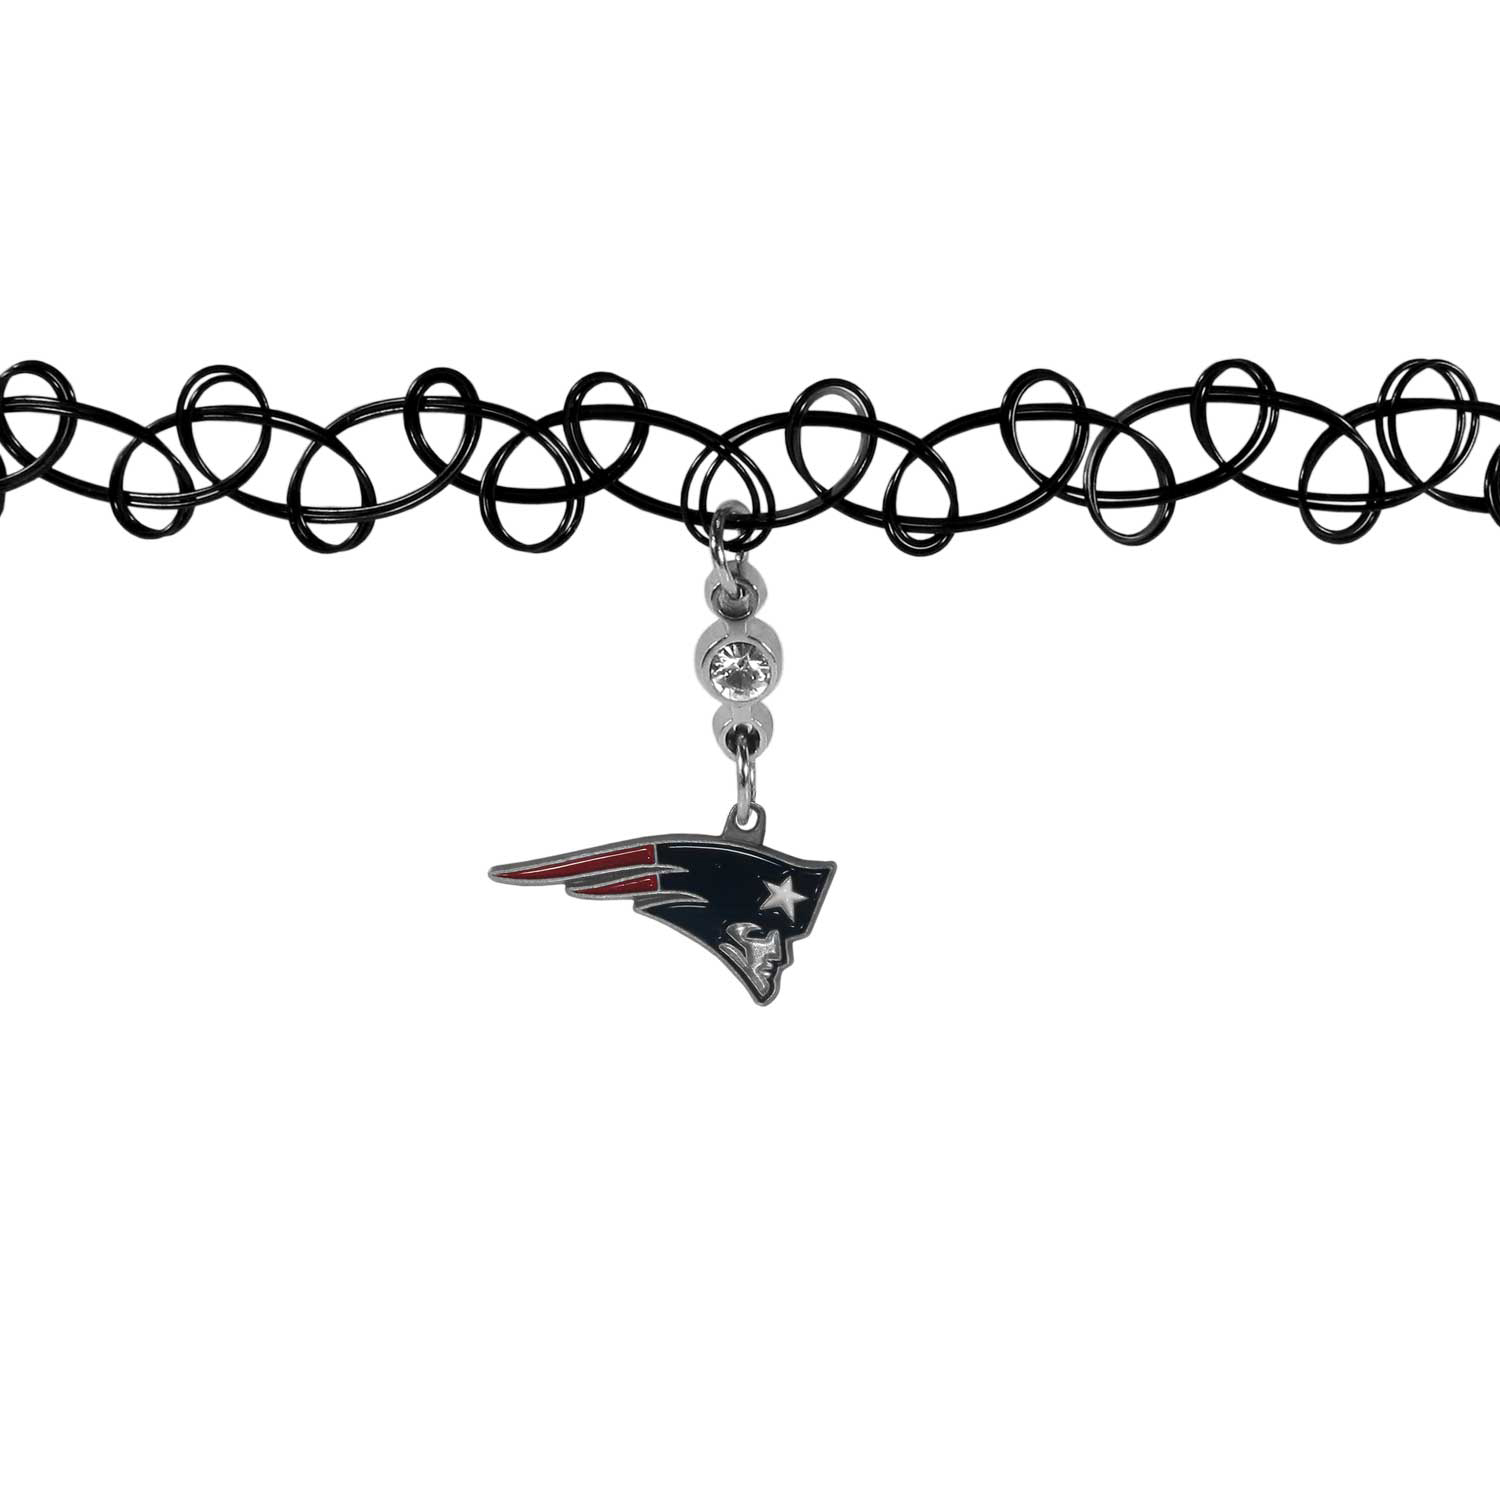 New England Patriots Knotted Choker - This retro, knotted choker is a cool and unique piece of fan jewelry. The tattoo style choker features a high polish New England Patriots charm with rhinestone accents.